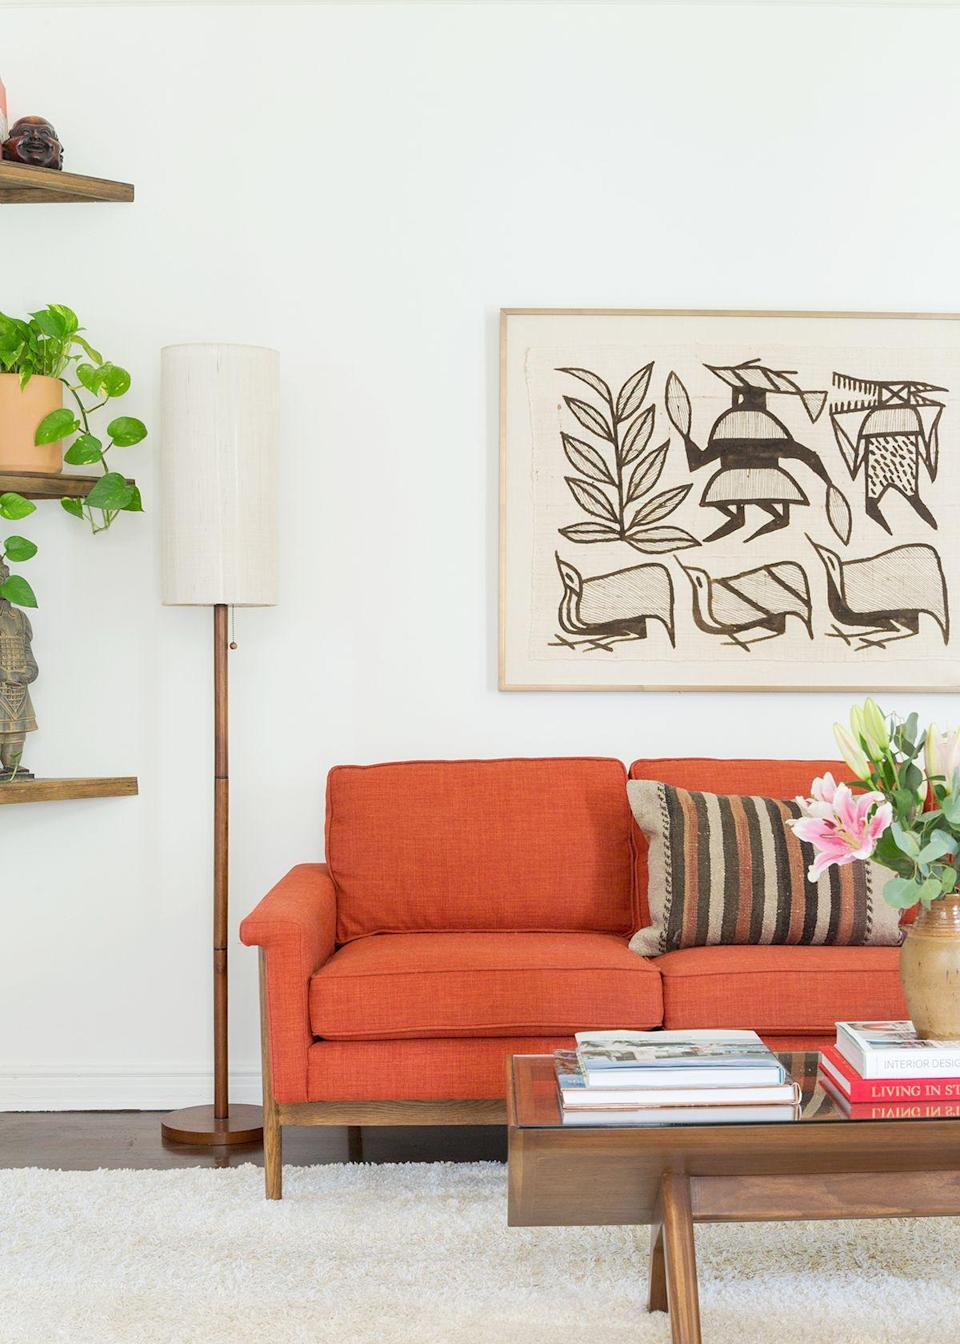 """After selecting the burnt orange sofa, """"the space evolved into an eclectic combination of vintage, handcrafted pieces, and stylish but utilitarian box-store items,"""" says Cheng. The designer made a point to select neutral accessories so as not to compete with the sofa and make the small space feel even smaller, she explained. To make the house feel """"finished,"""" she opted for a collection of truly unique artwork."""